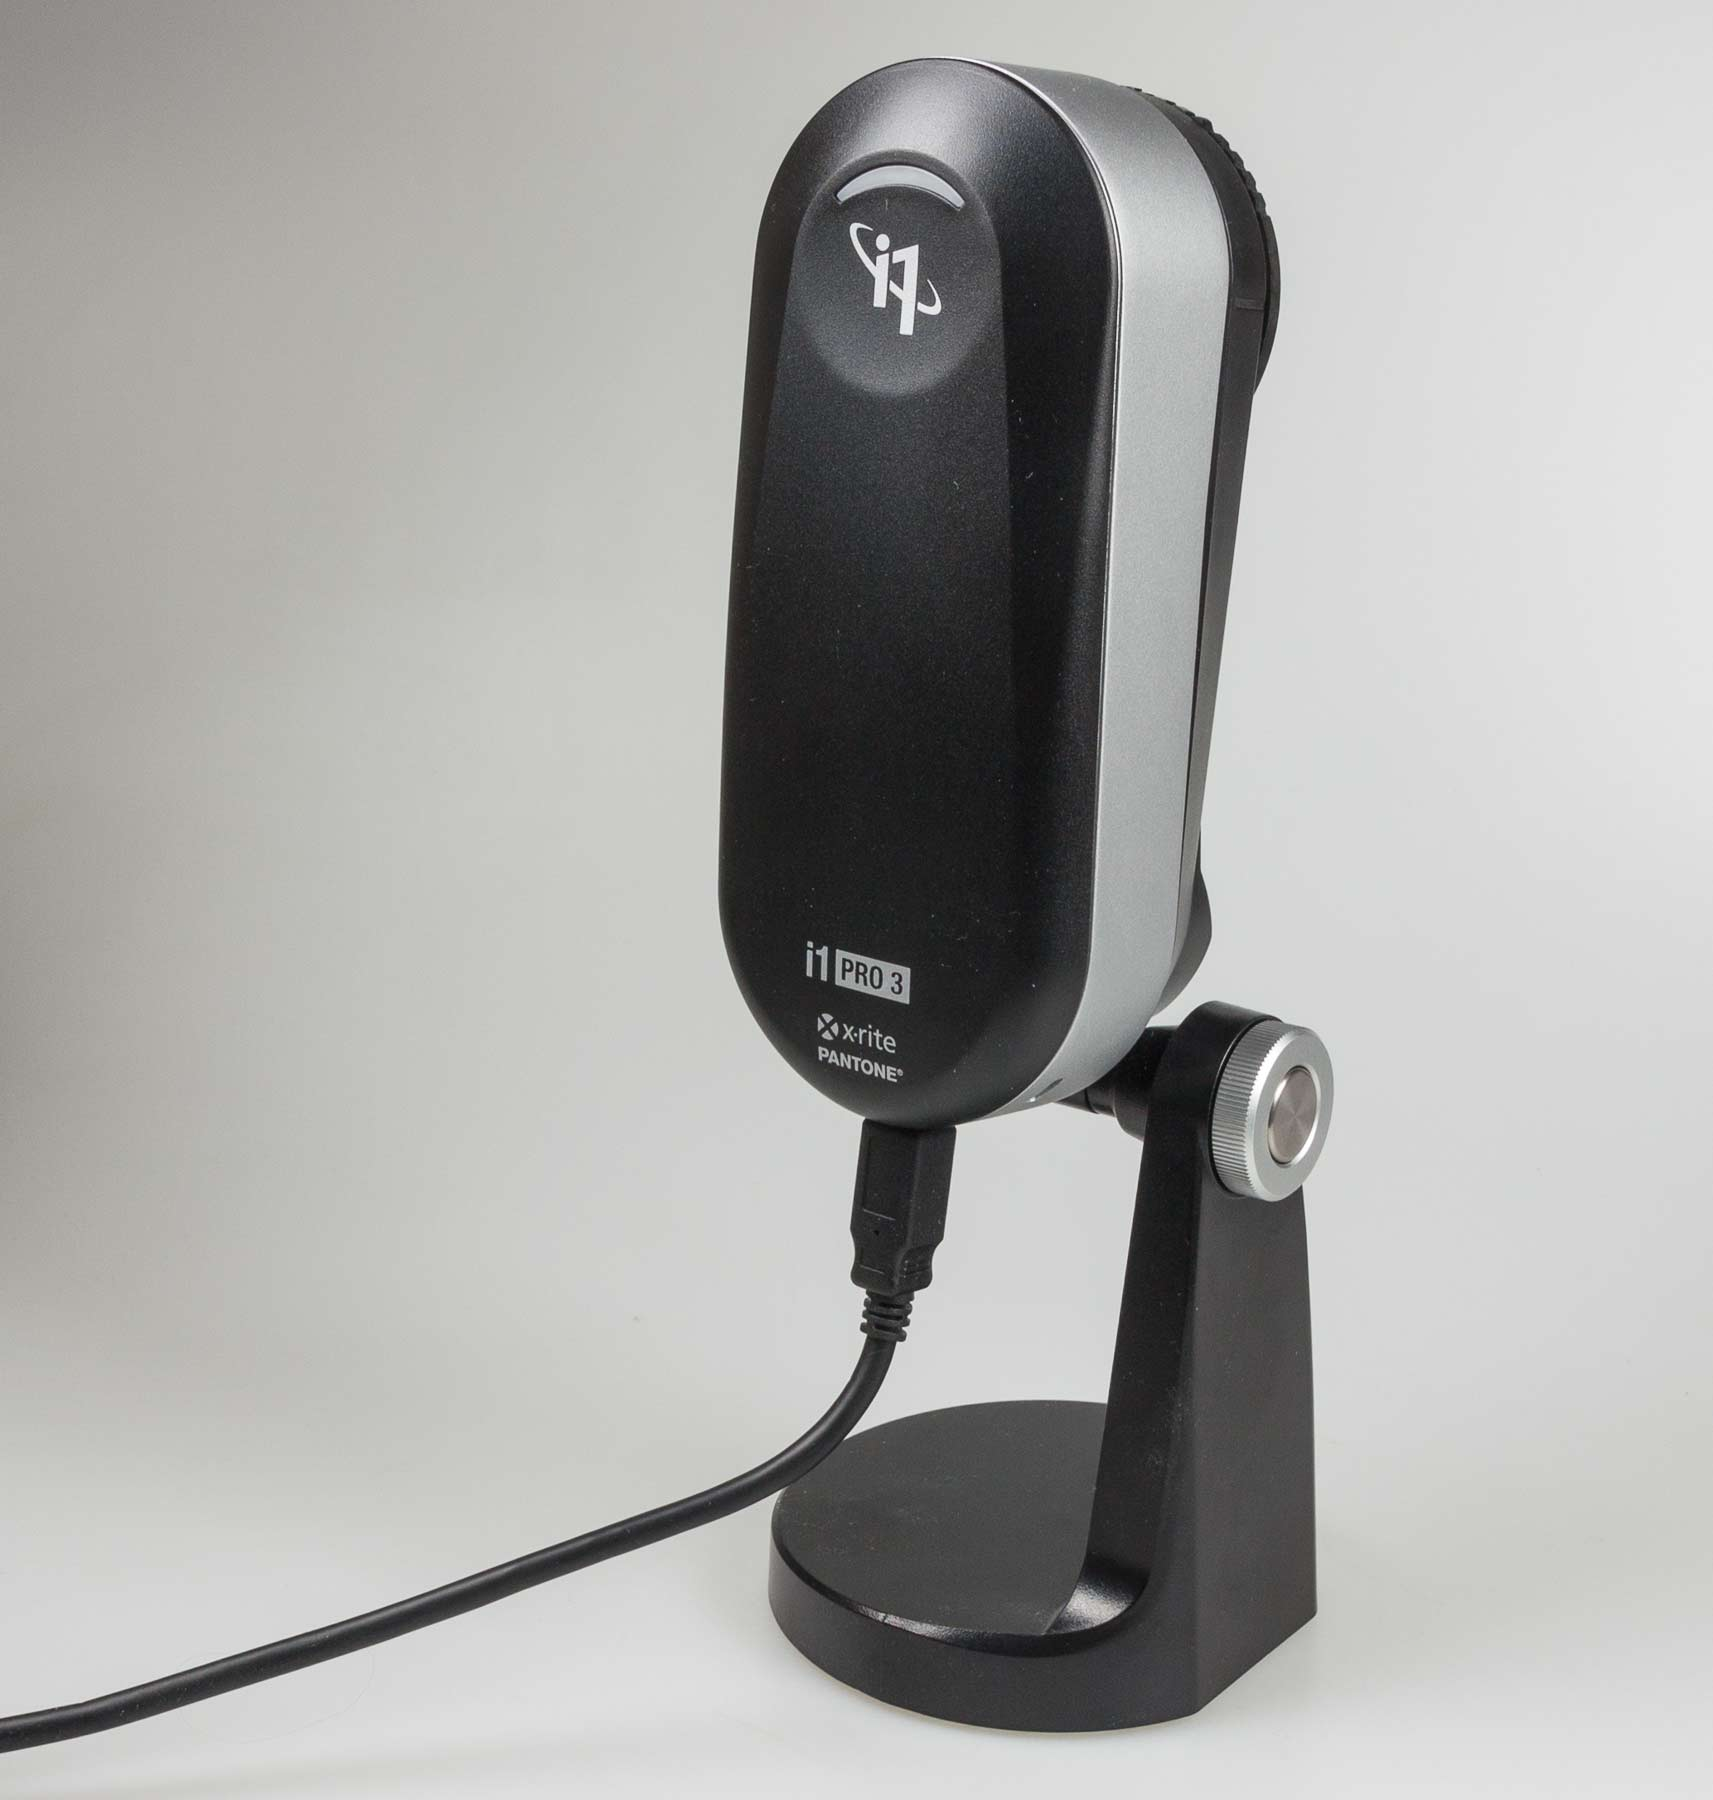 i1pro3-on-stand-for-projector-profiling